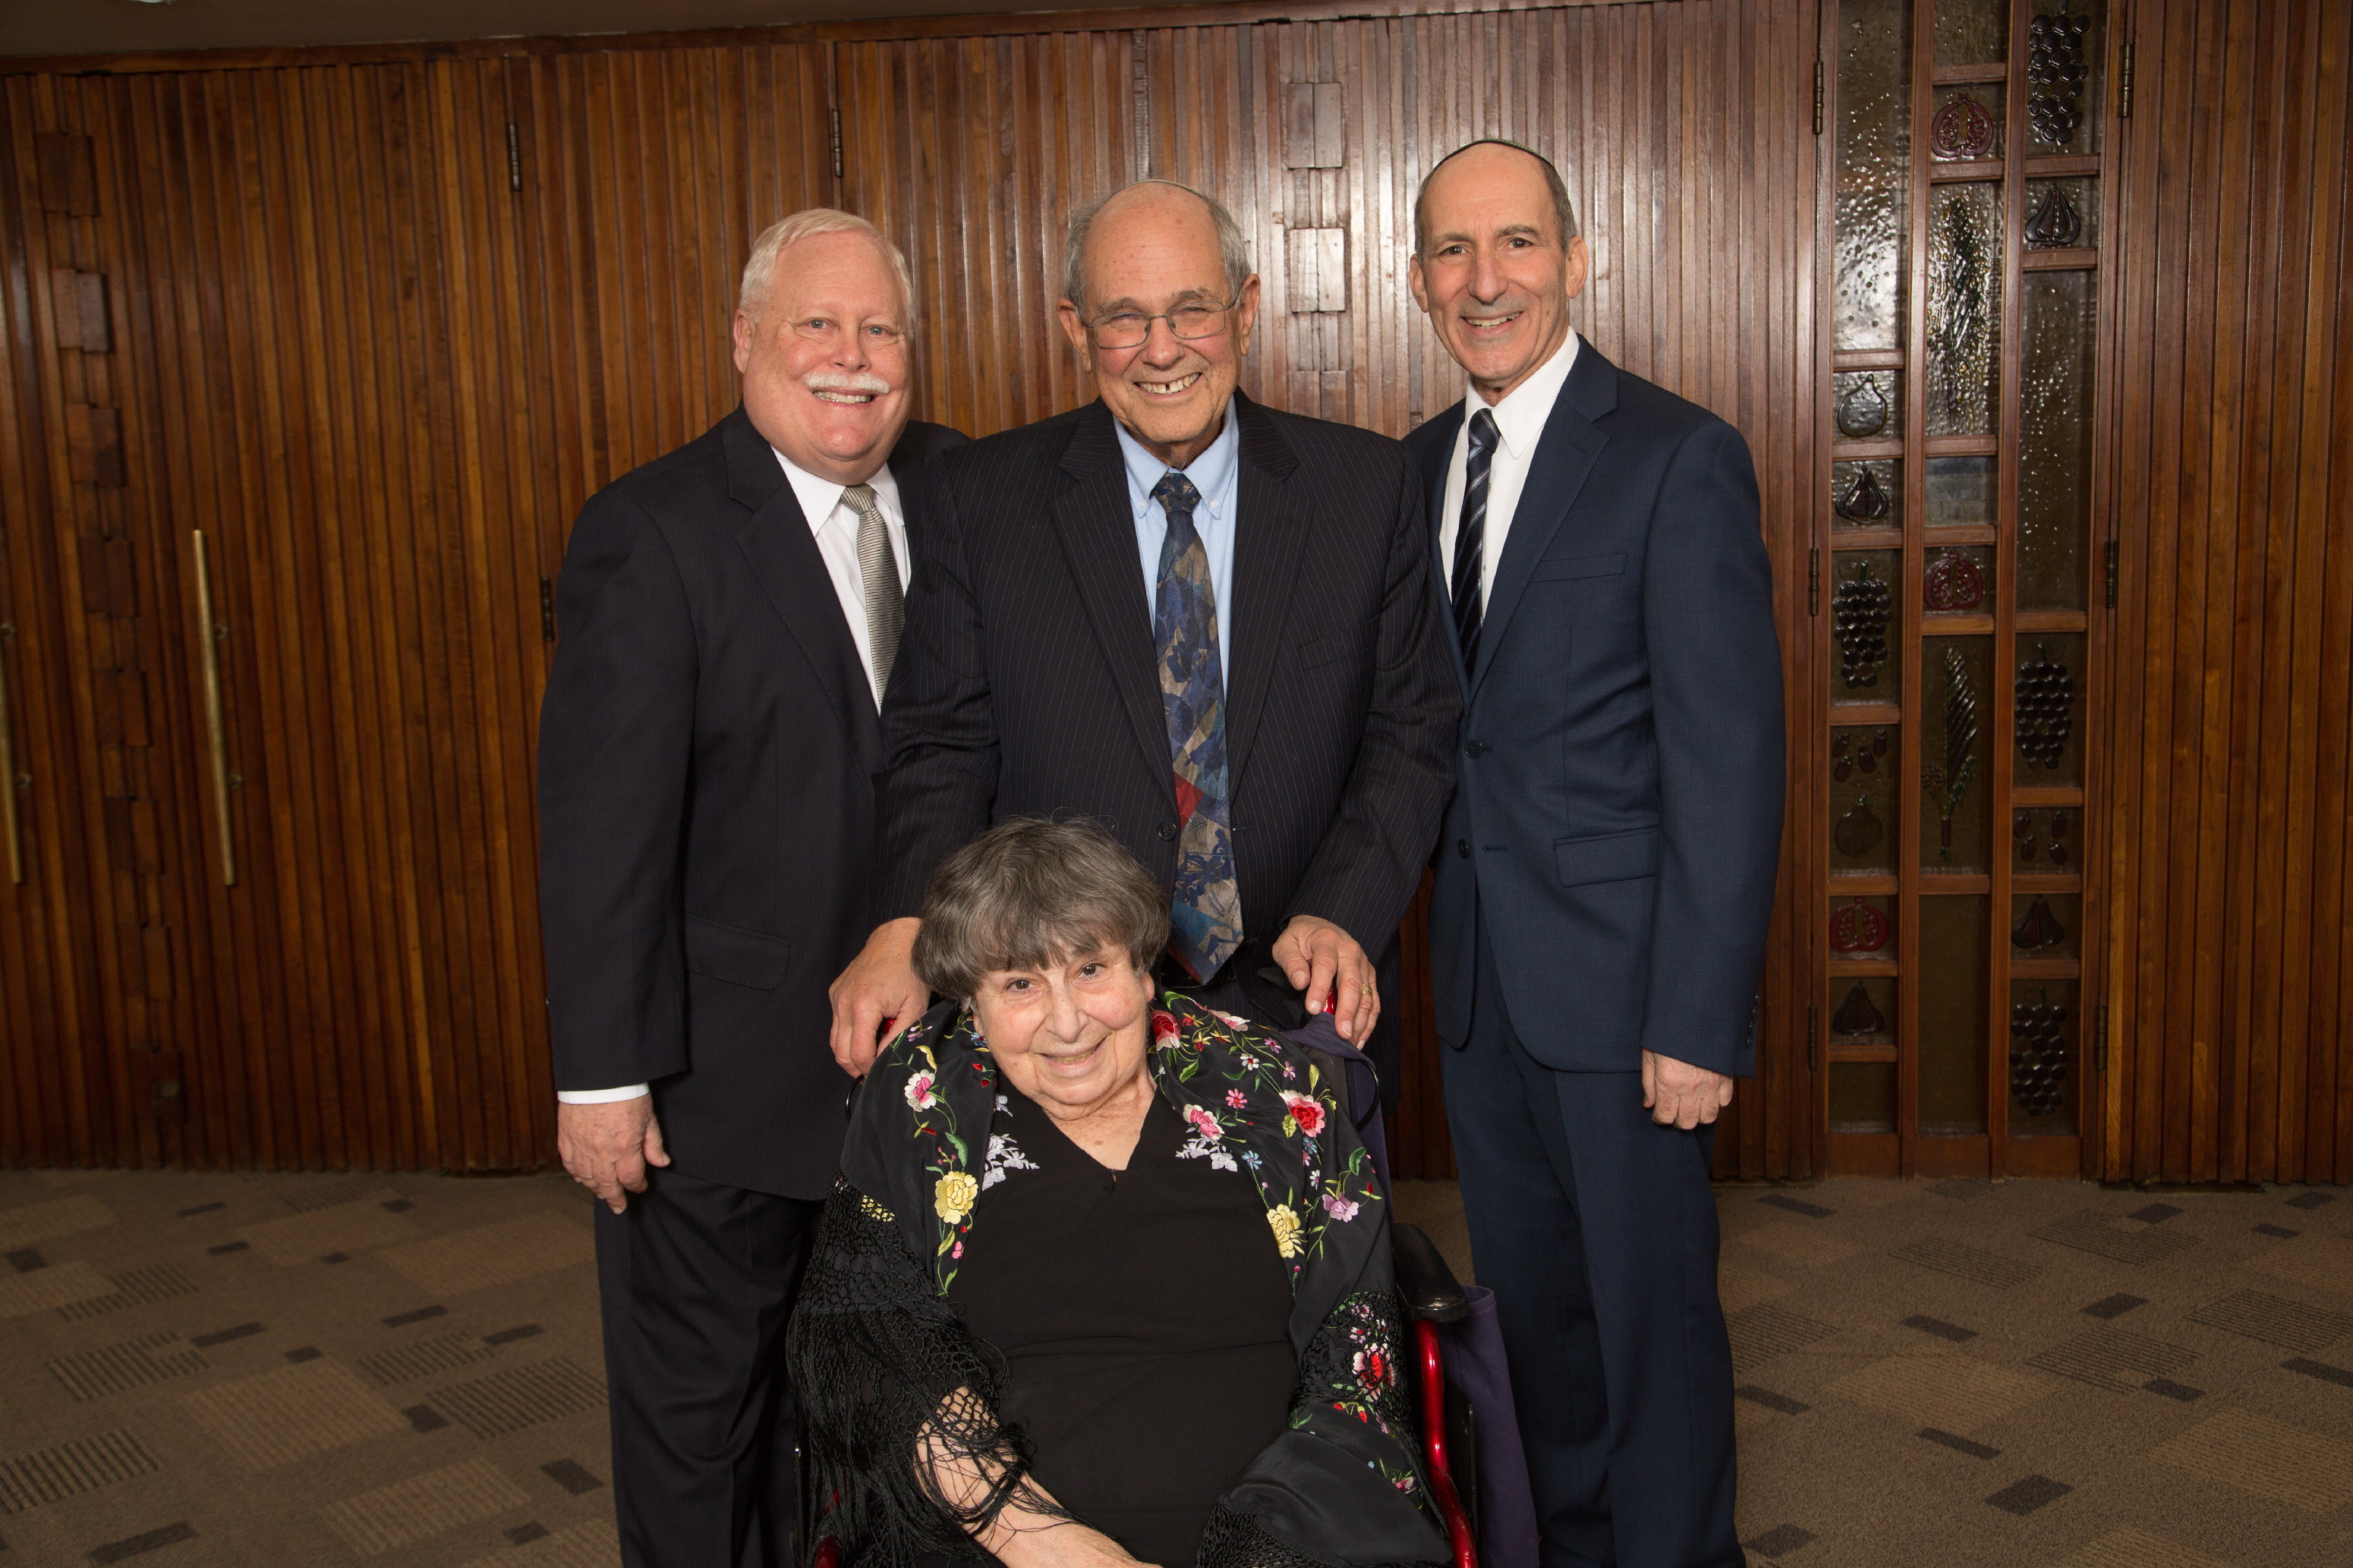 BJE Board President Mark Berns, Honorees Marlynn and Rabbi Elliot Dorff and BJE Executive Director Dr. Gil Graff